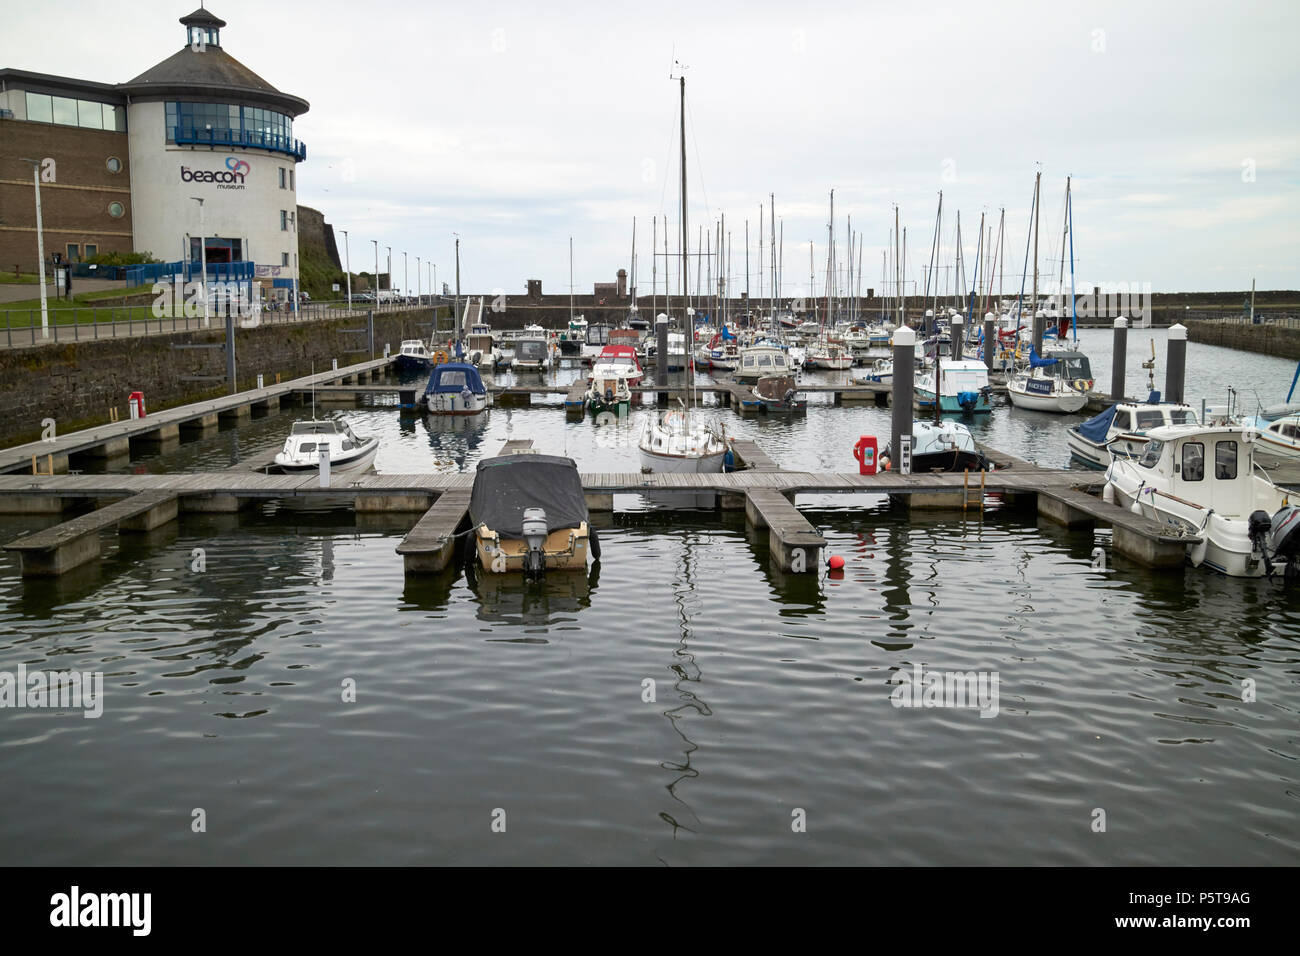 Whitehaven harbour and marina Cumbria England UK - Stock Image